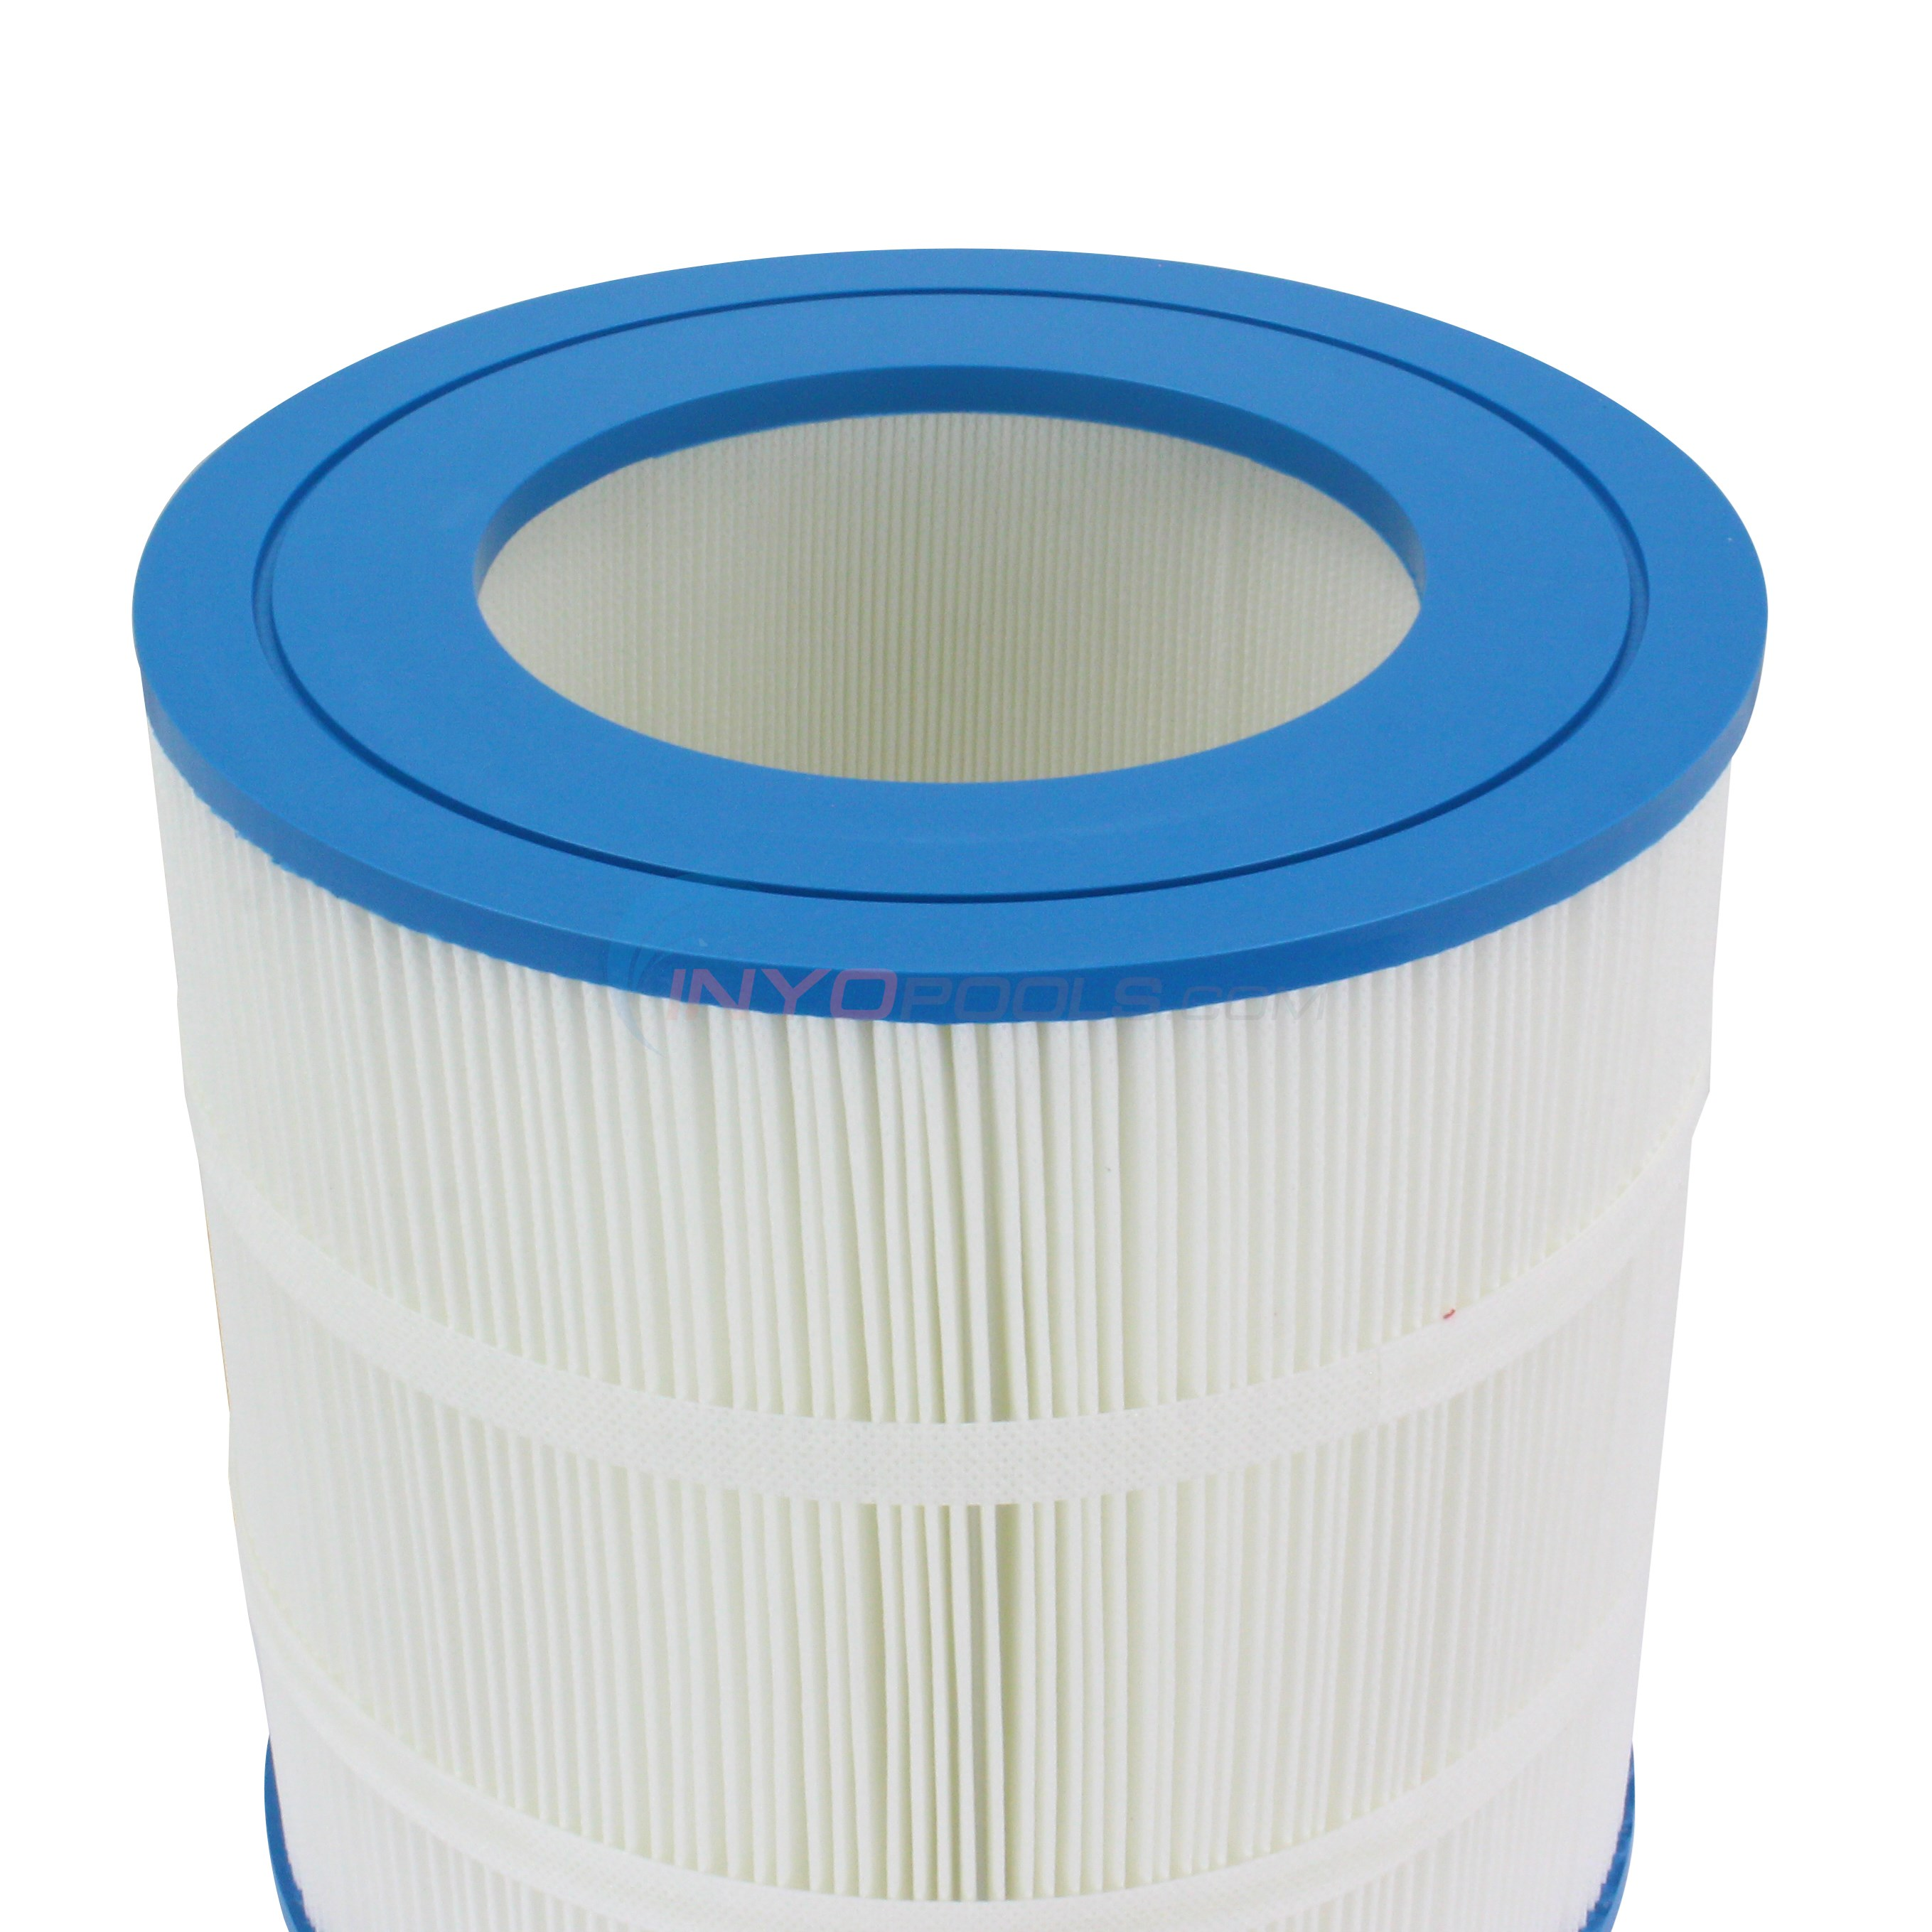 PureLine Jacuzzi CFR 100 Replacement Cartridge - PL0155